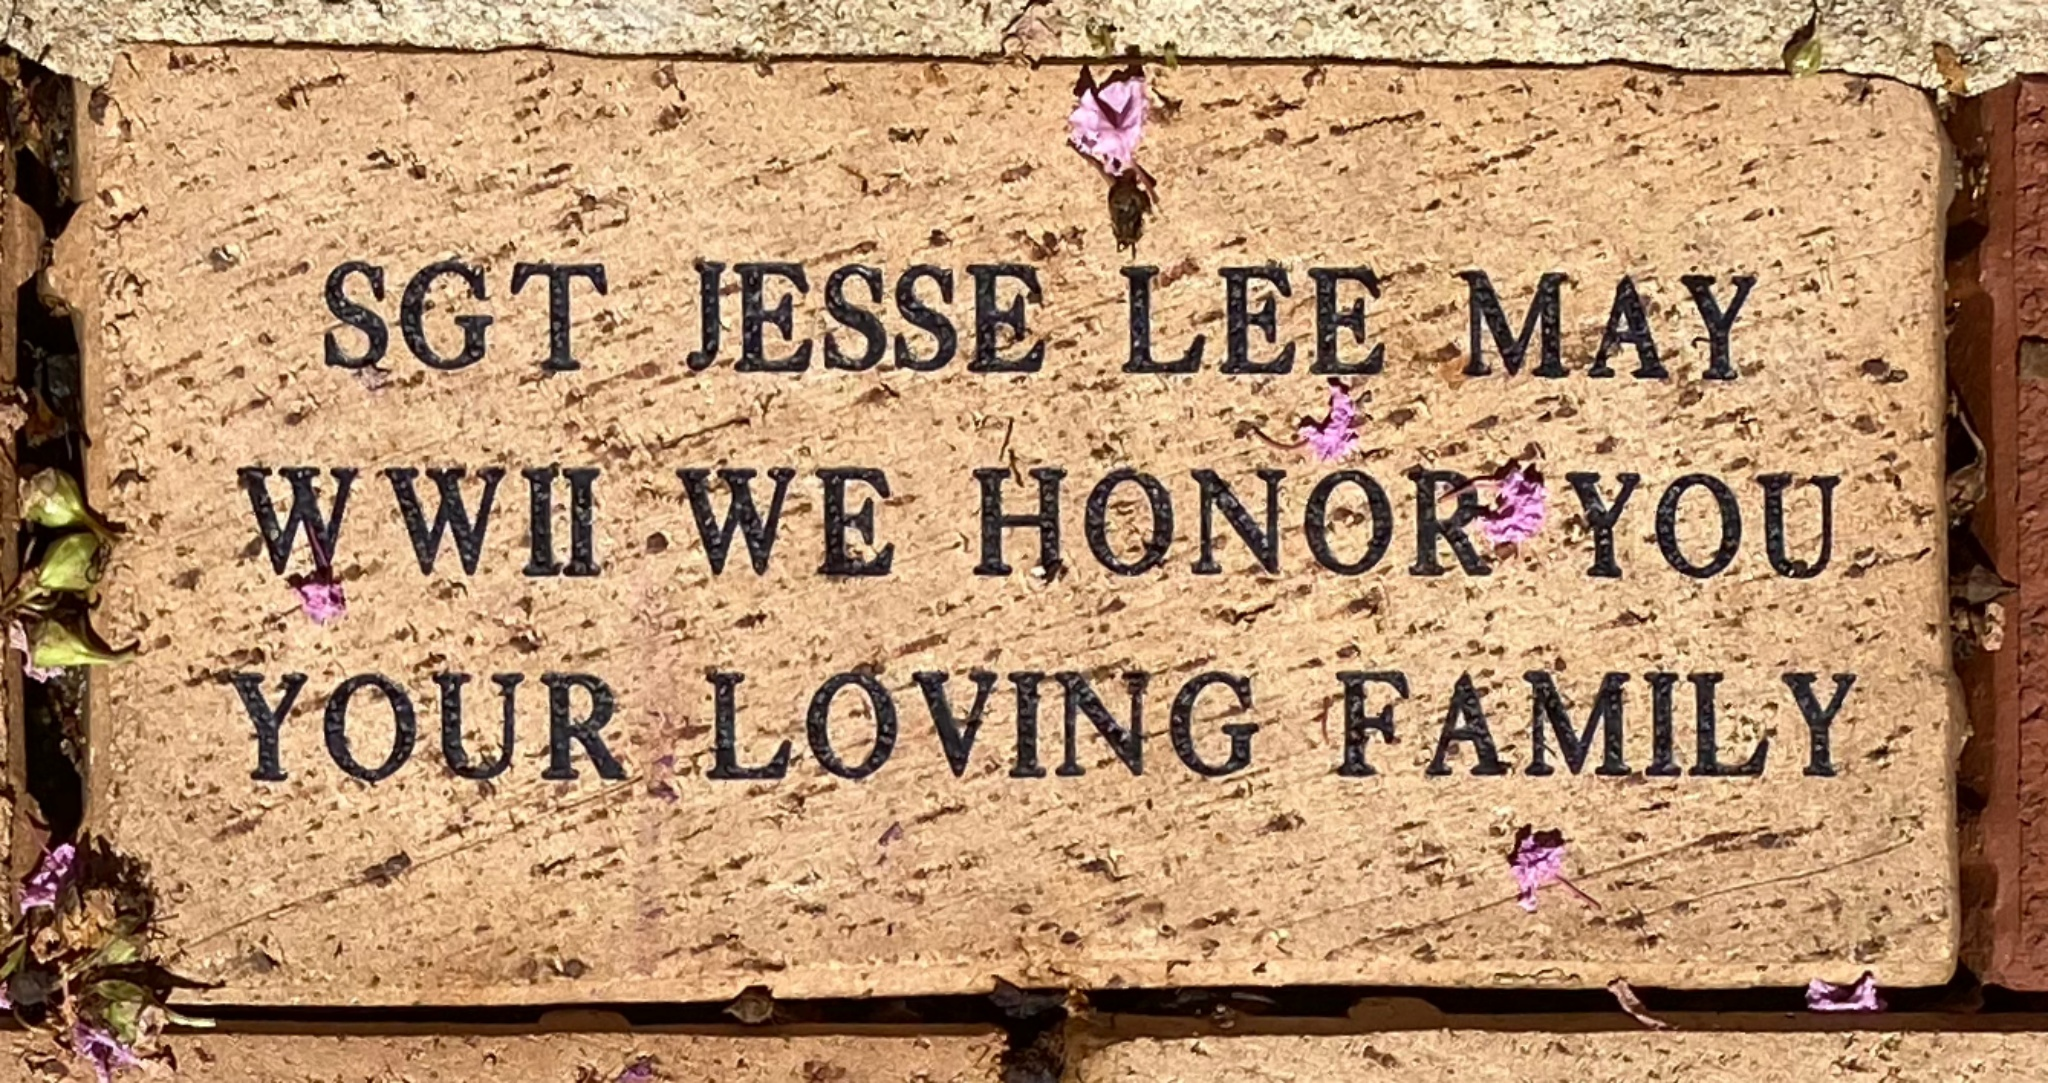 SGT JESSE LEE MAY WWII WE HONOR YOU YOUR LOVING FAMILY